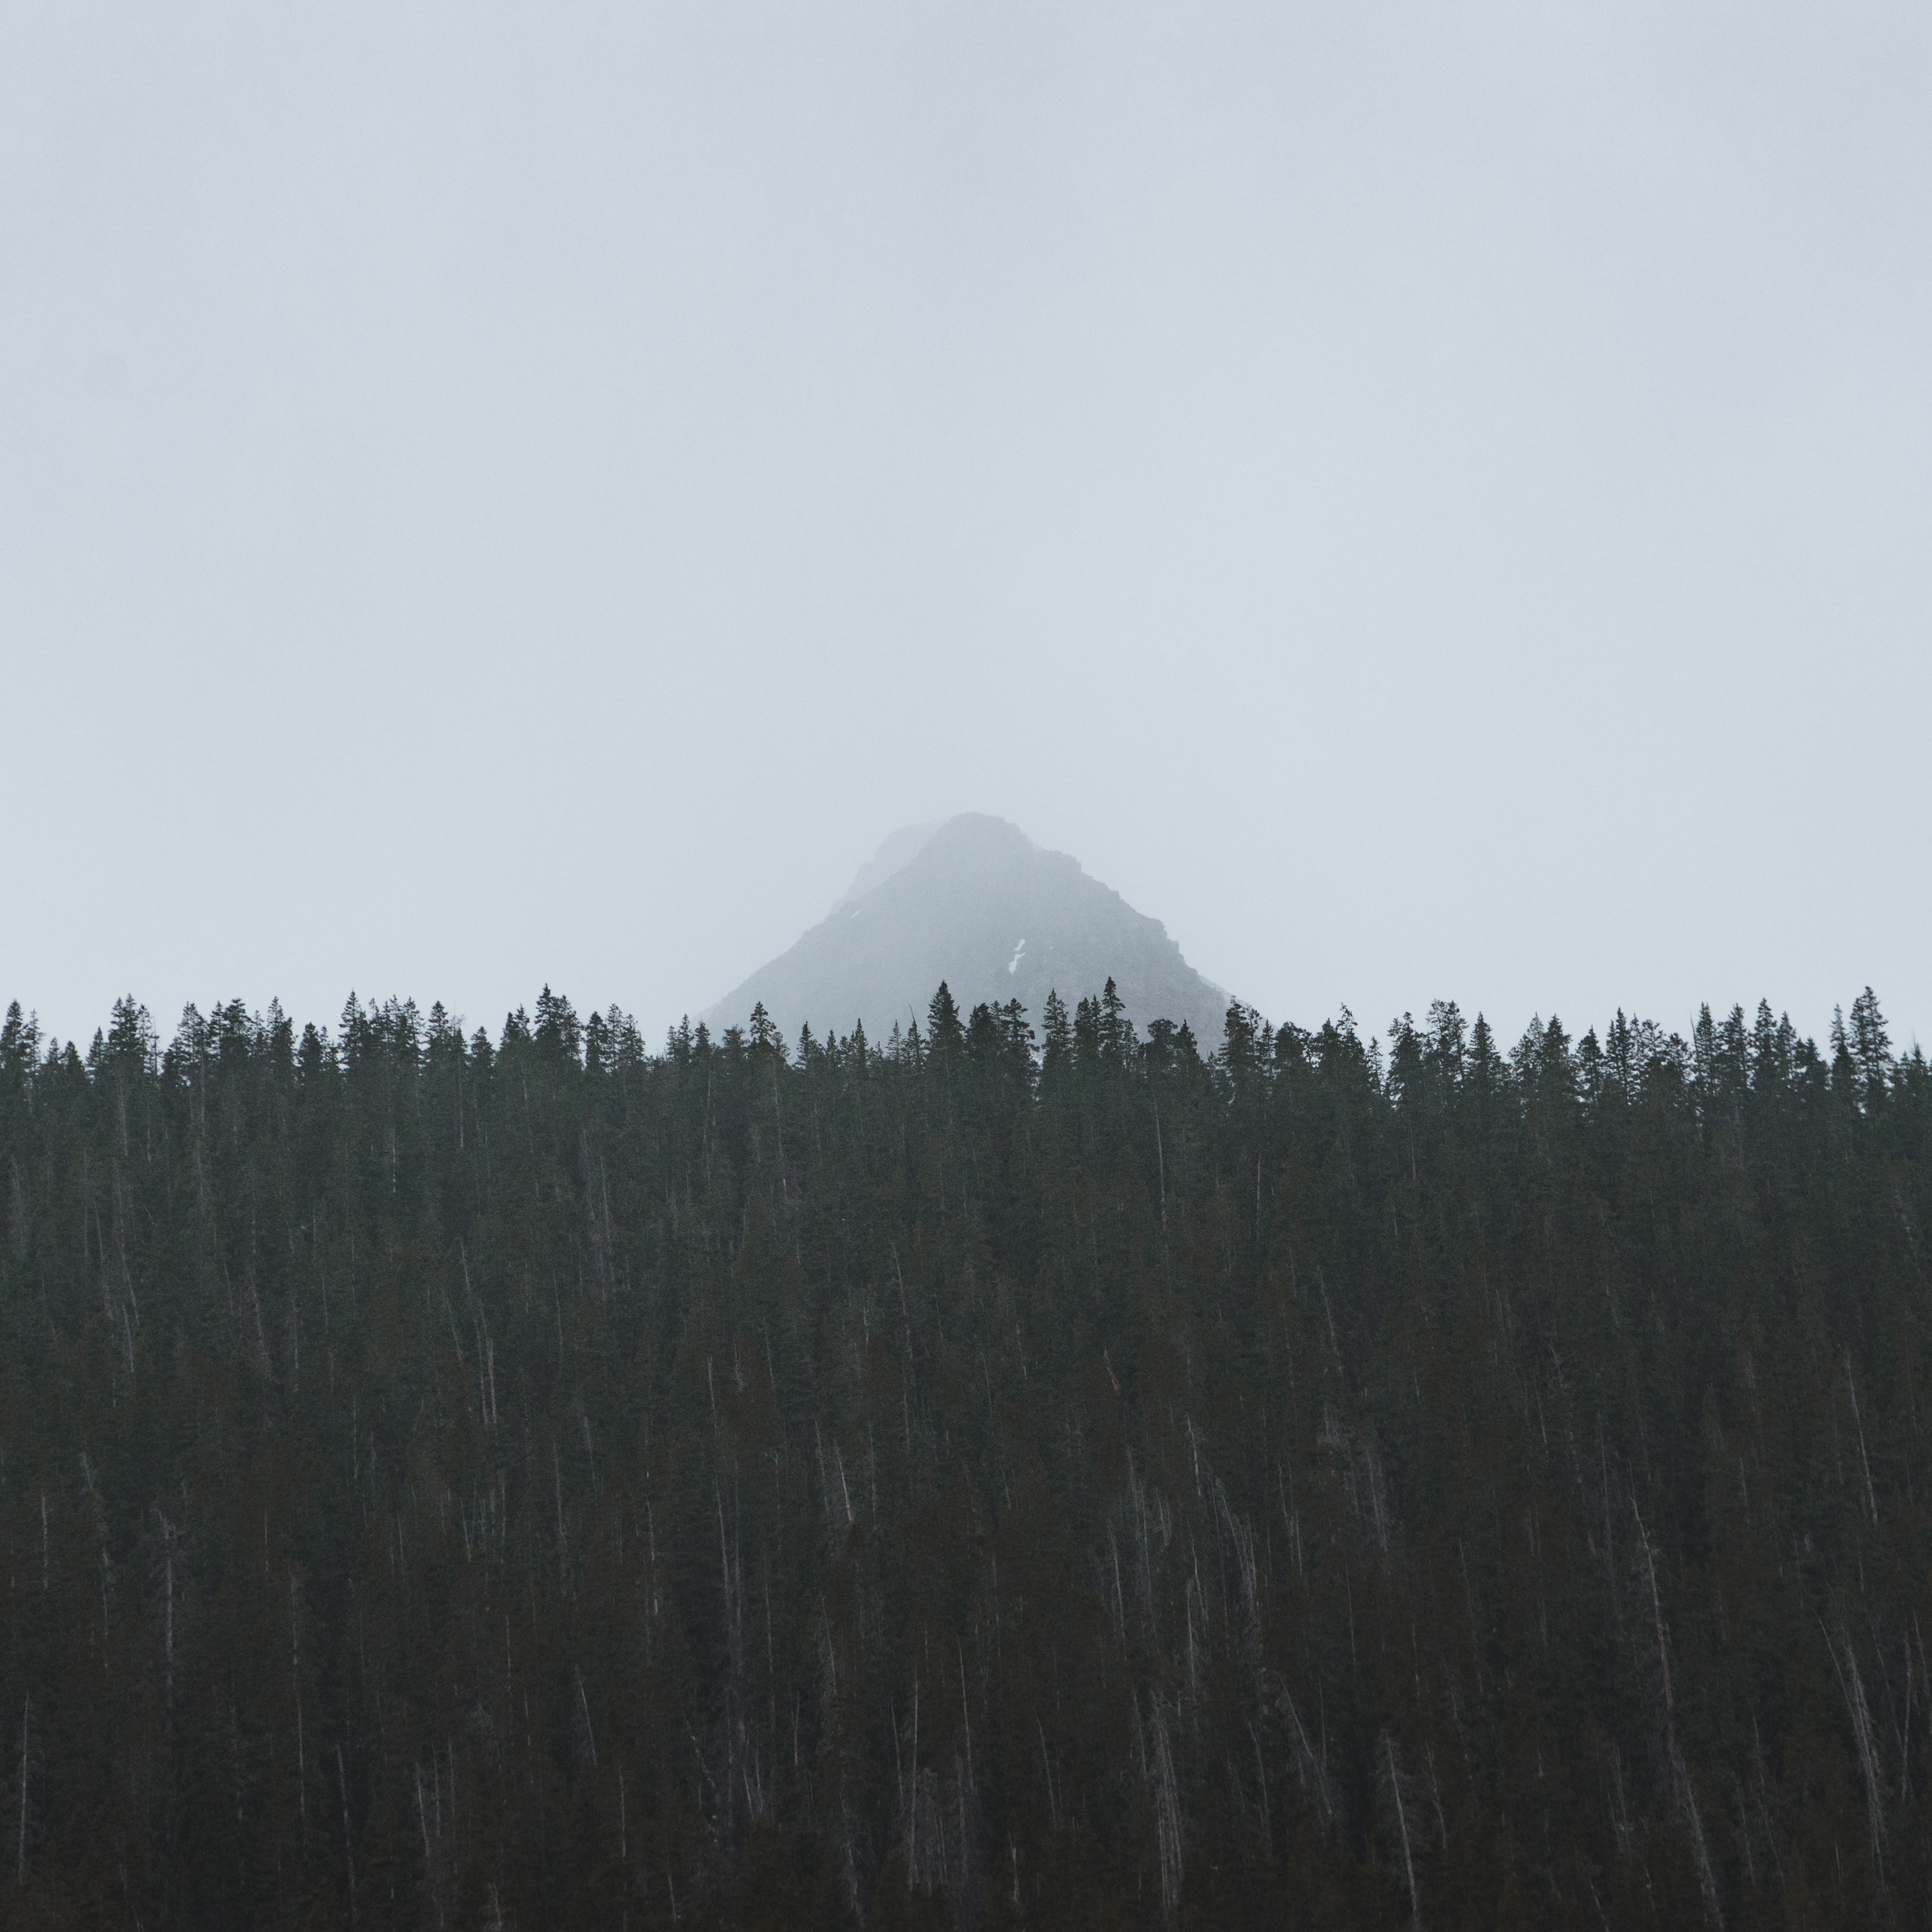 A tall mountain peak shrouded in fog behind a dark forest